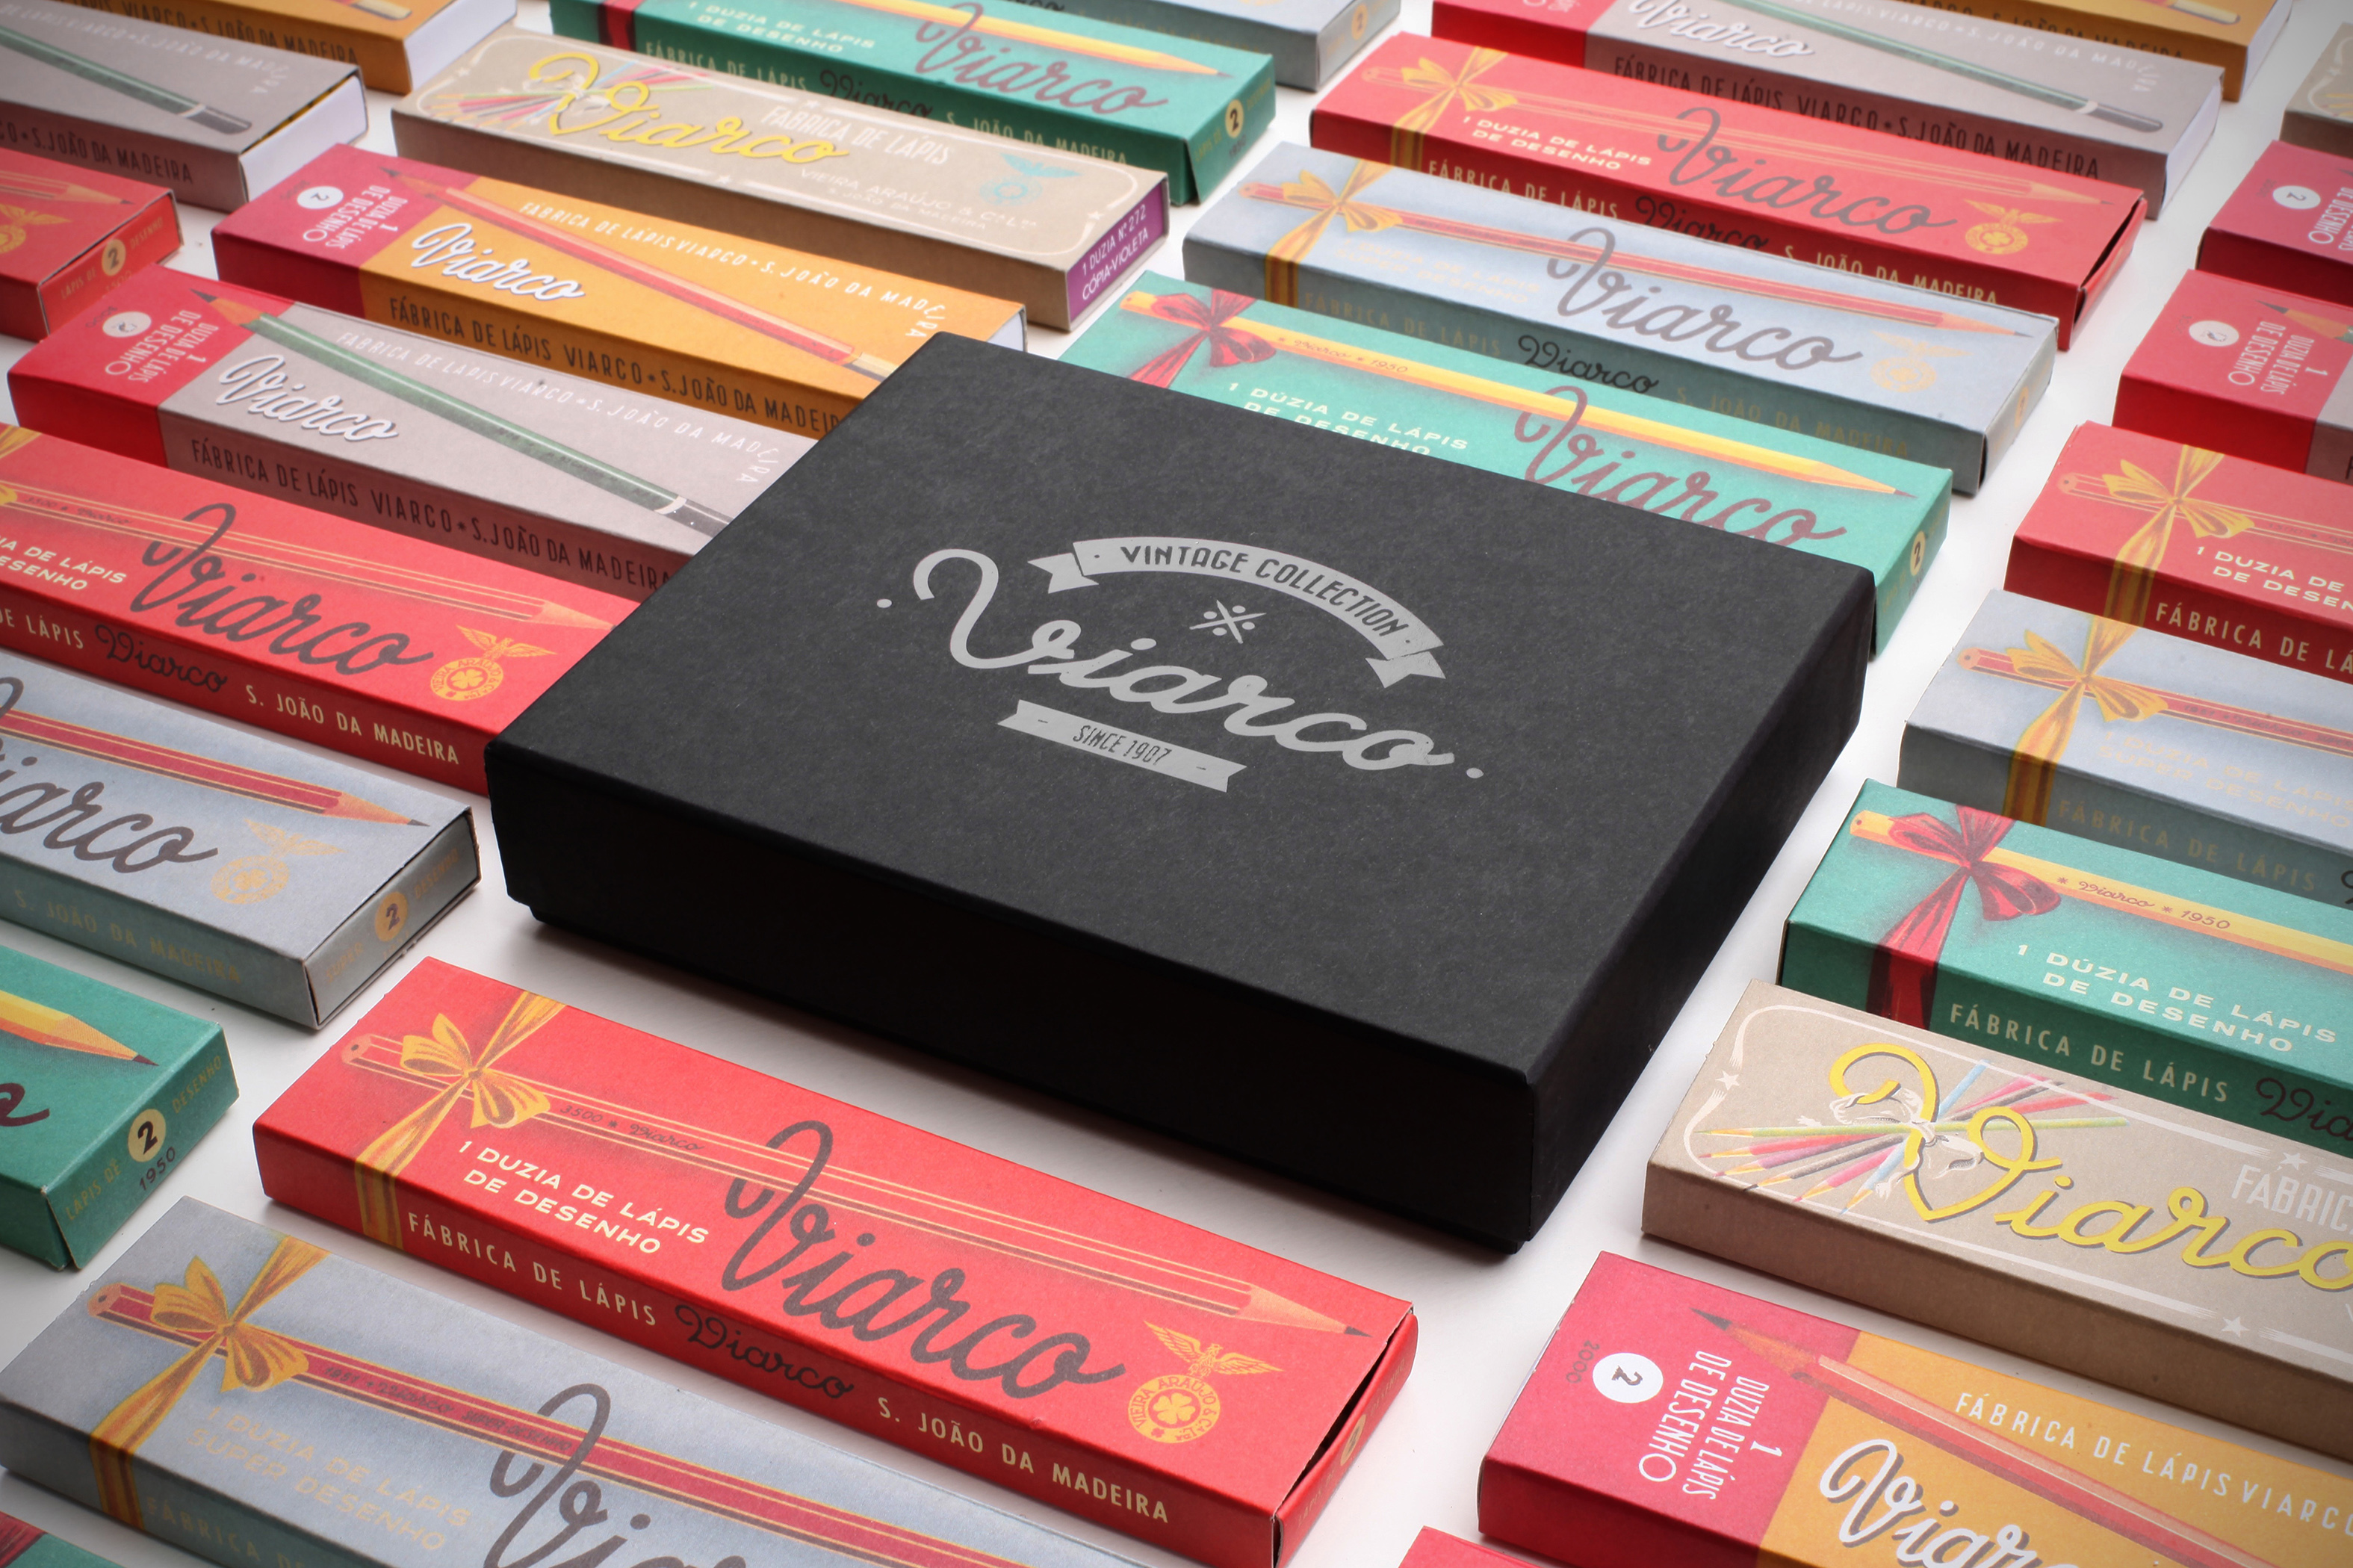 Viarco Vintage Collection by Paulo Marcelo - Creative Work - $i